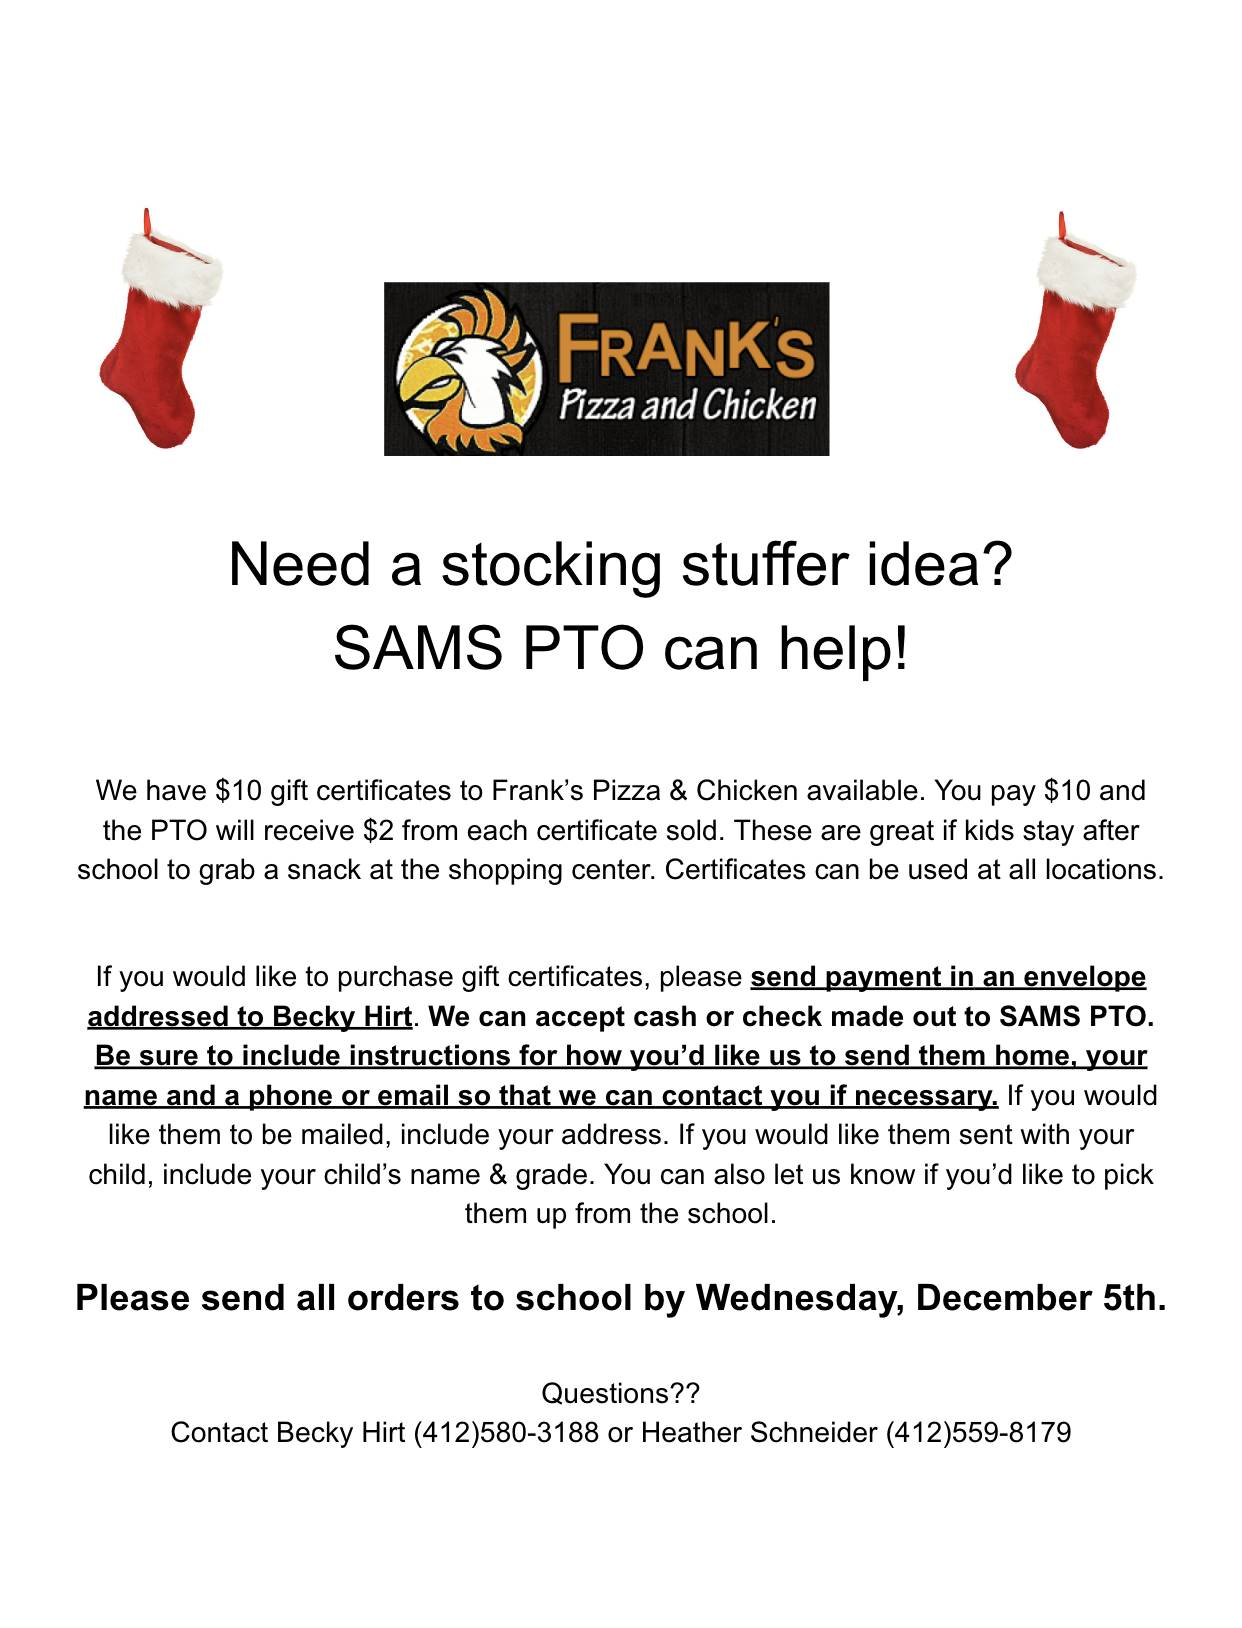 Frank's Gift Certificates available through Dec 5th!